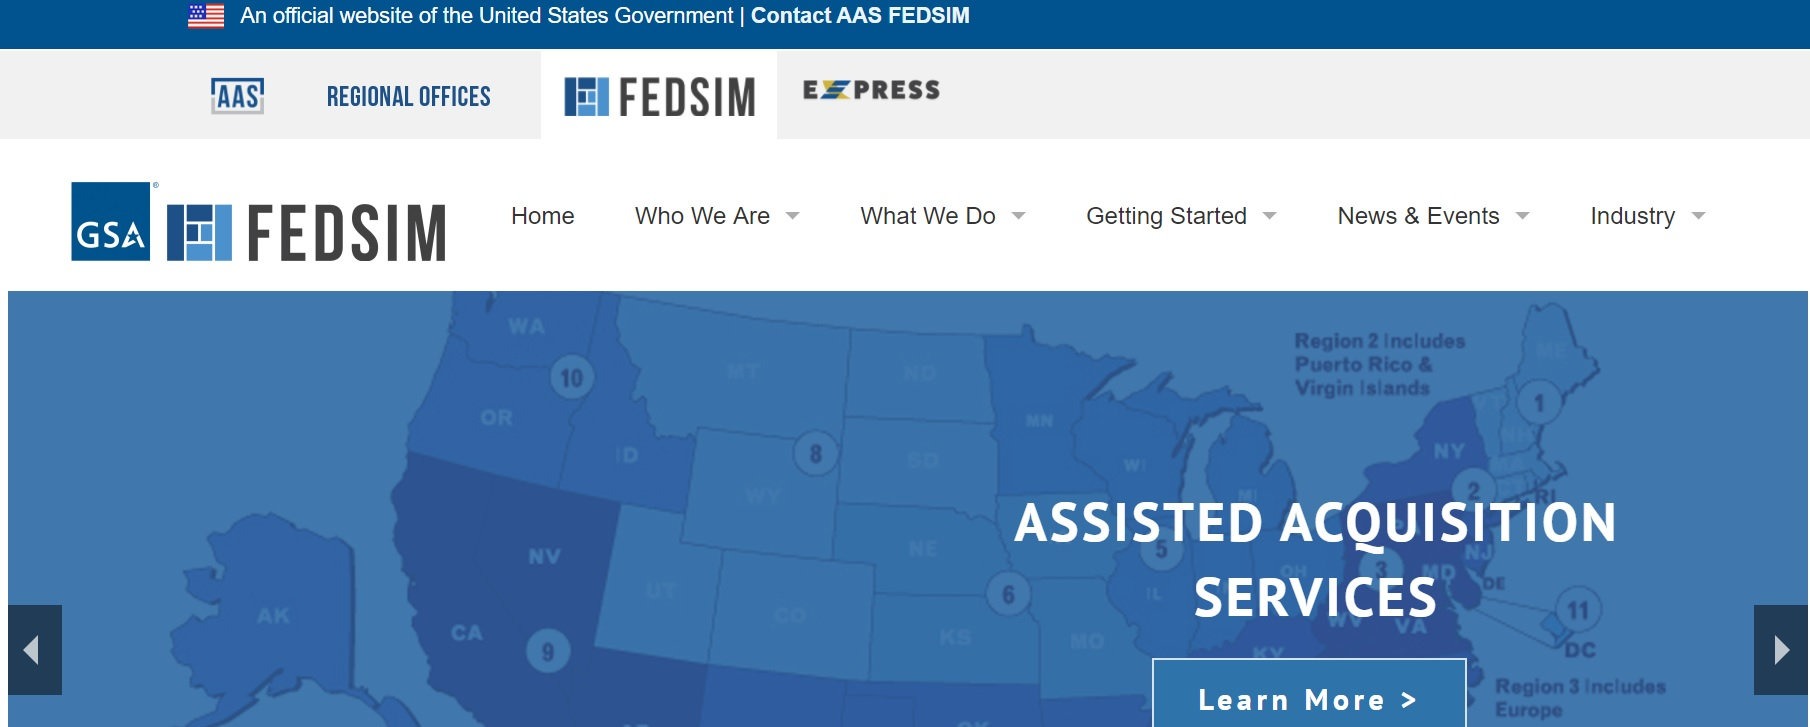 FEDSIM - Federal Systems Integration and Management Center